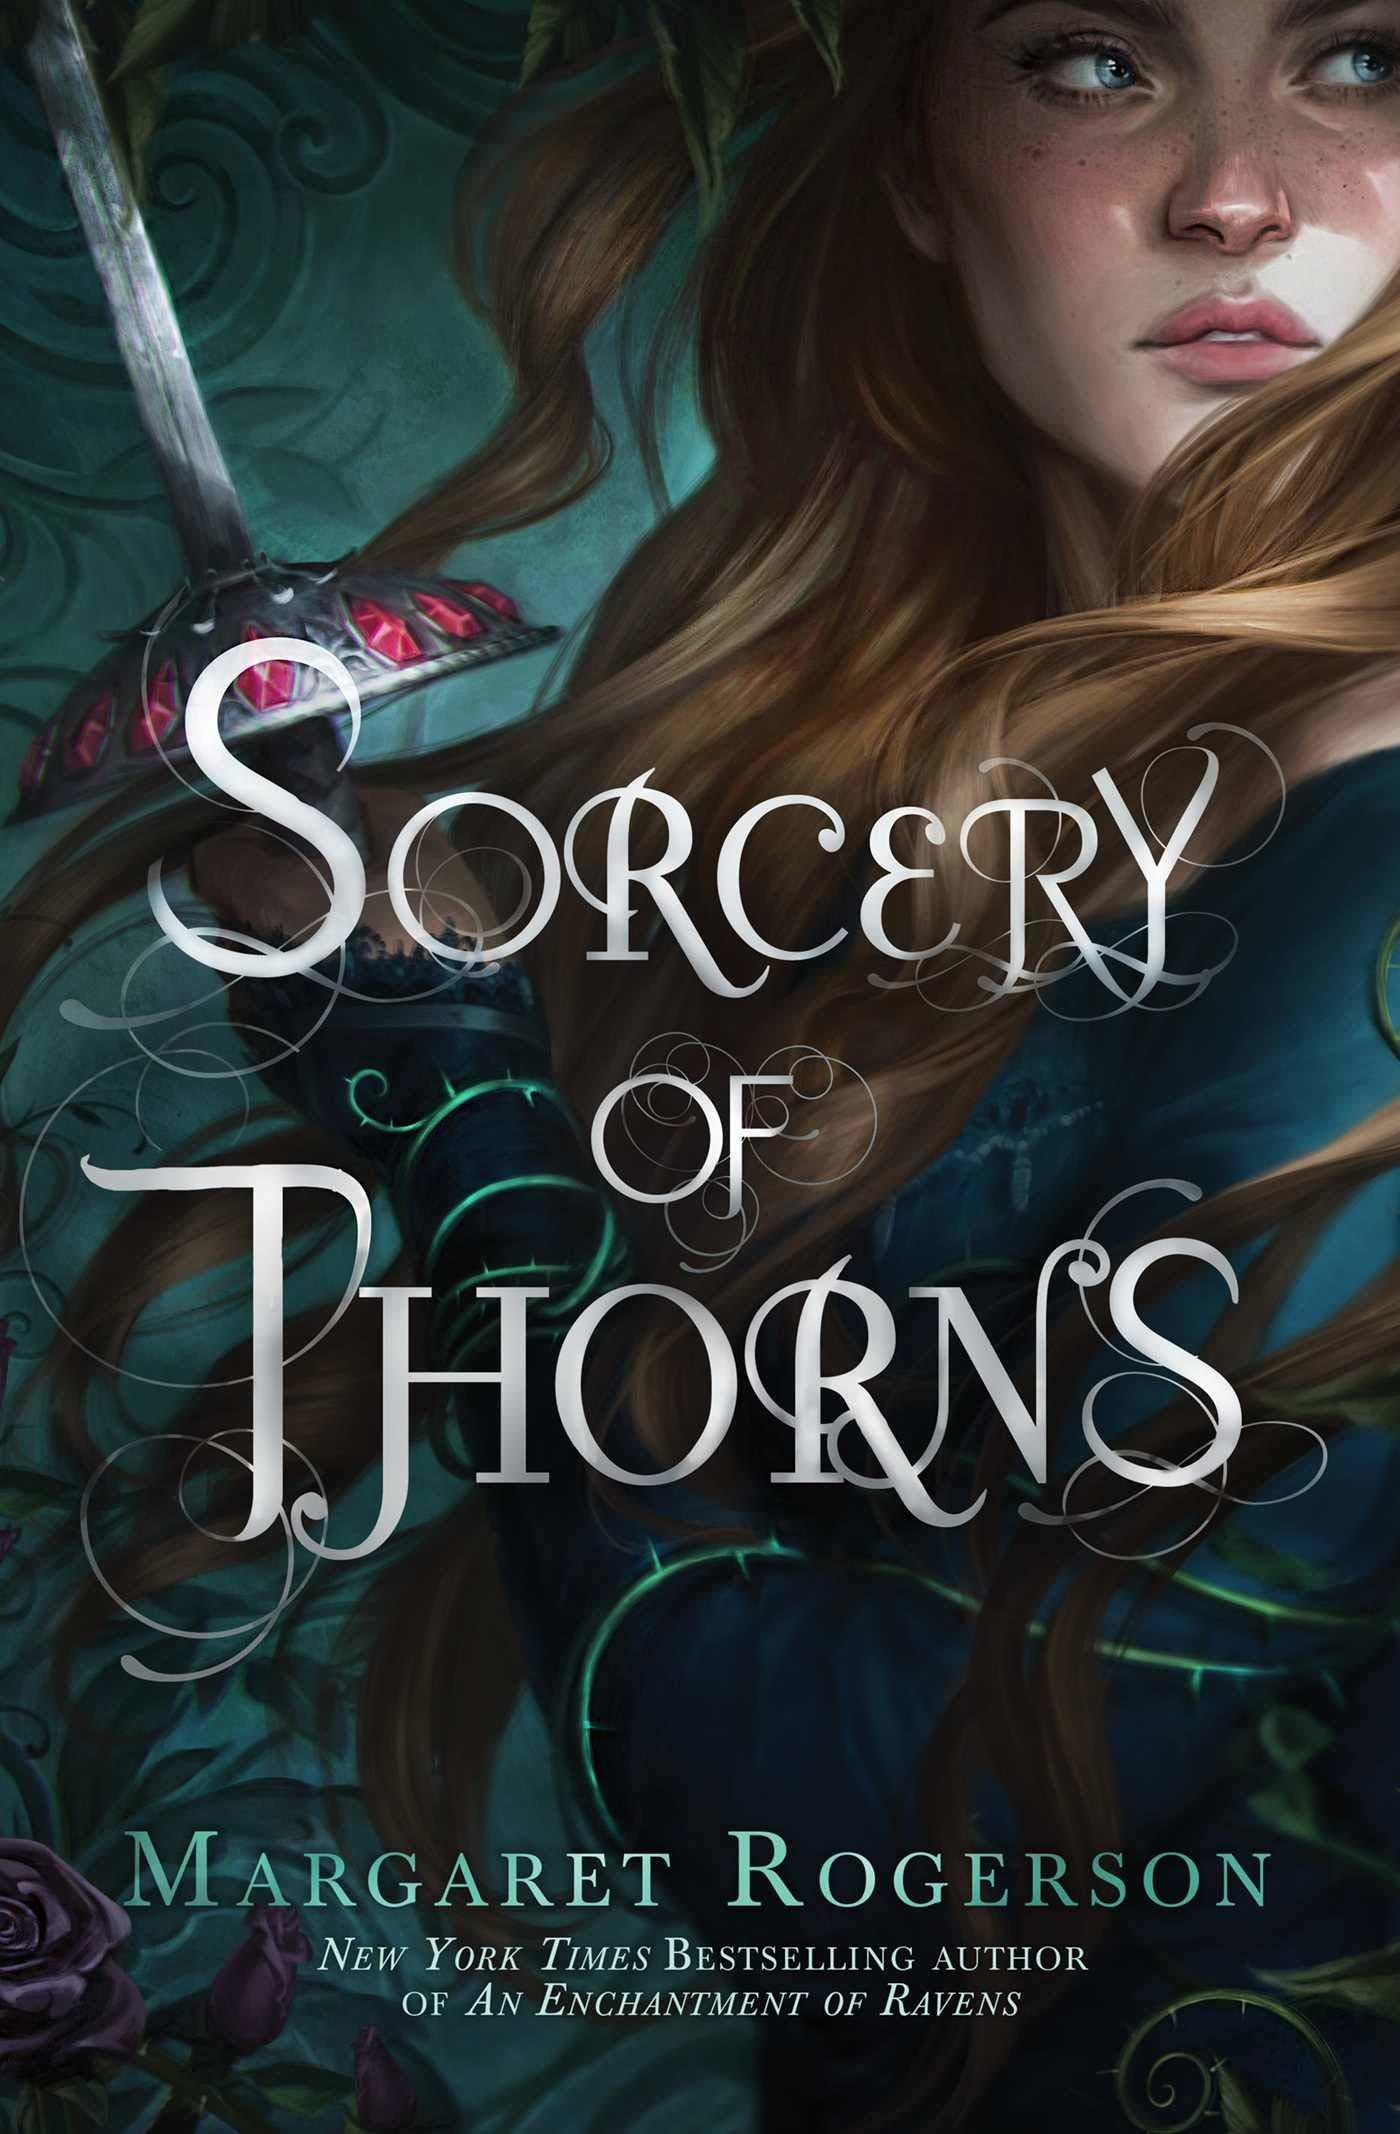 book cover image of Sorcery of Thorns with woman with holding sword